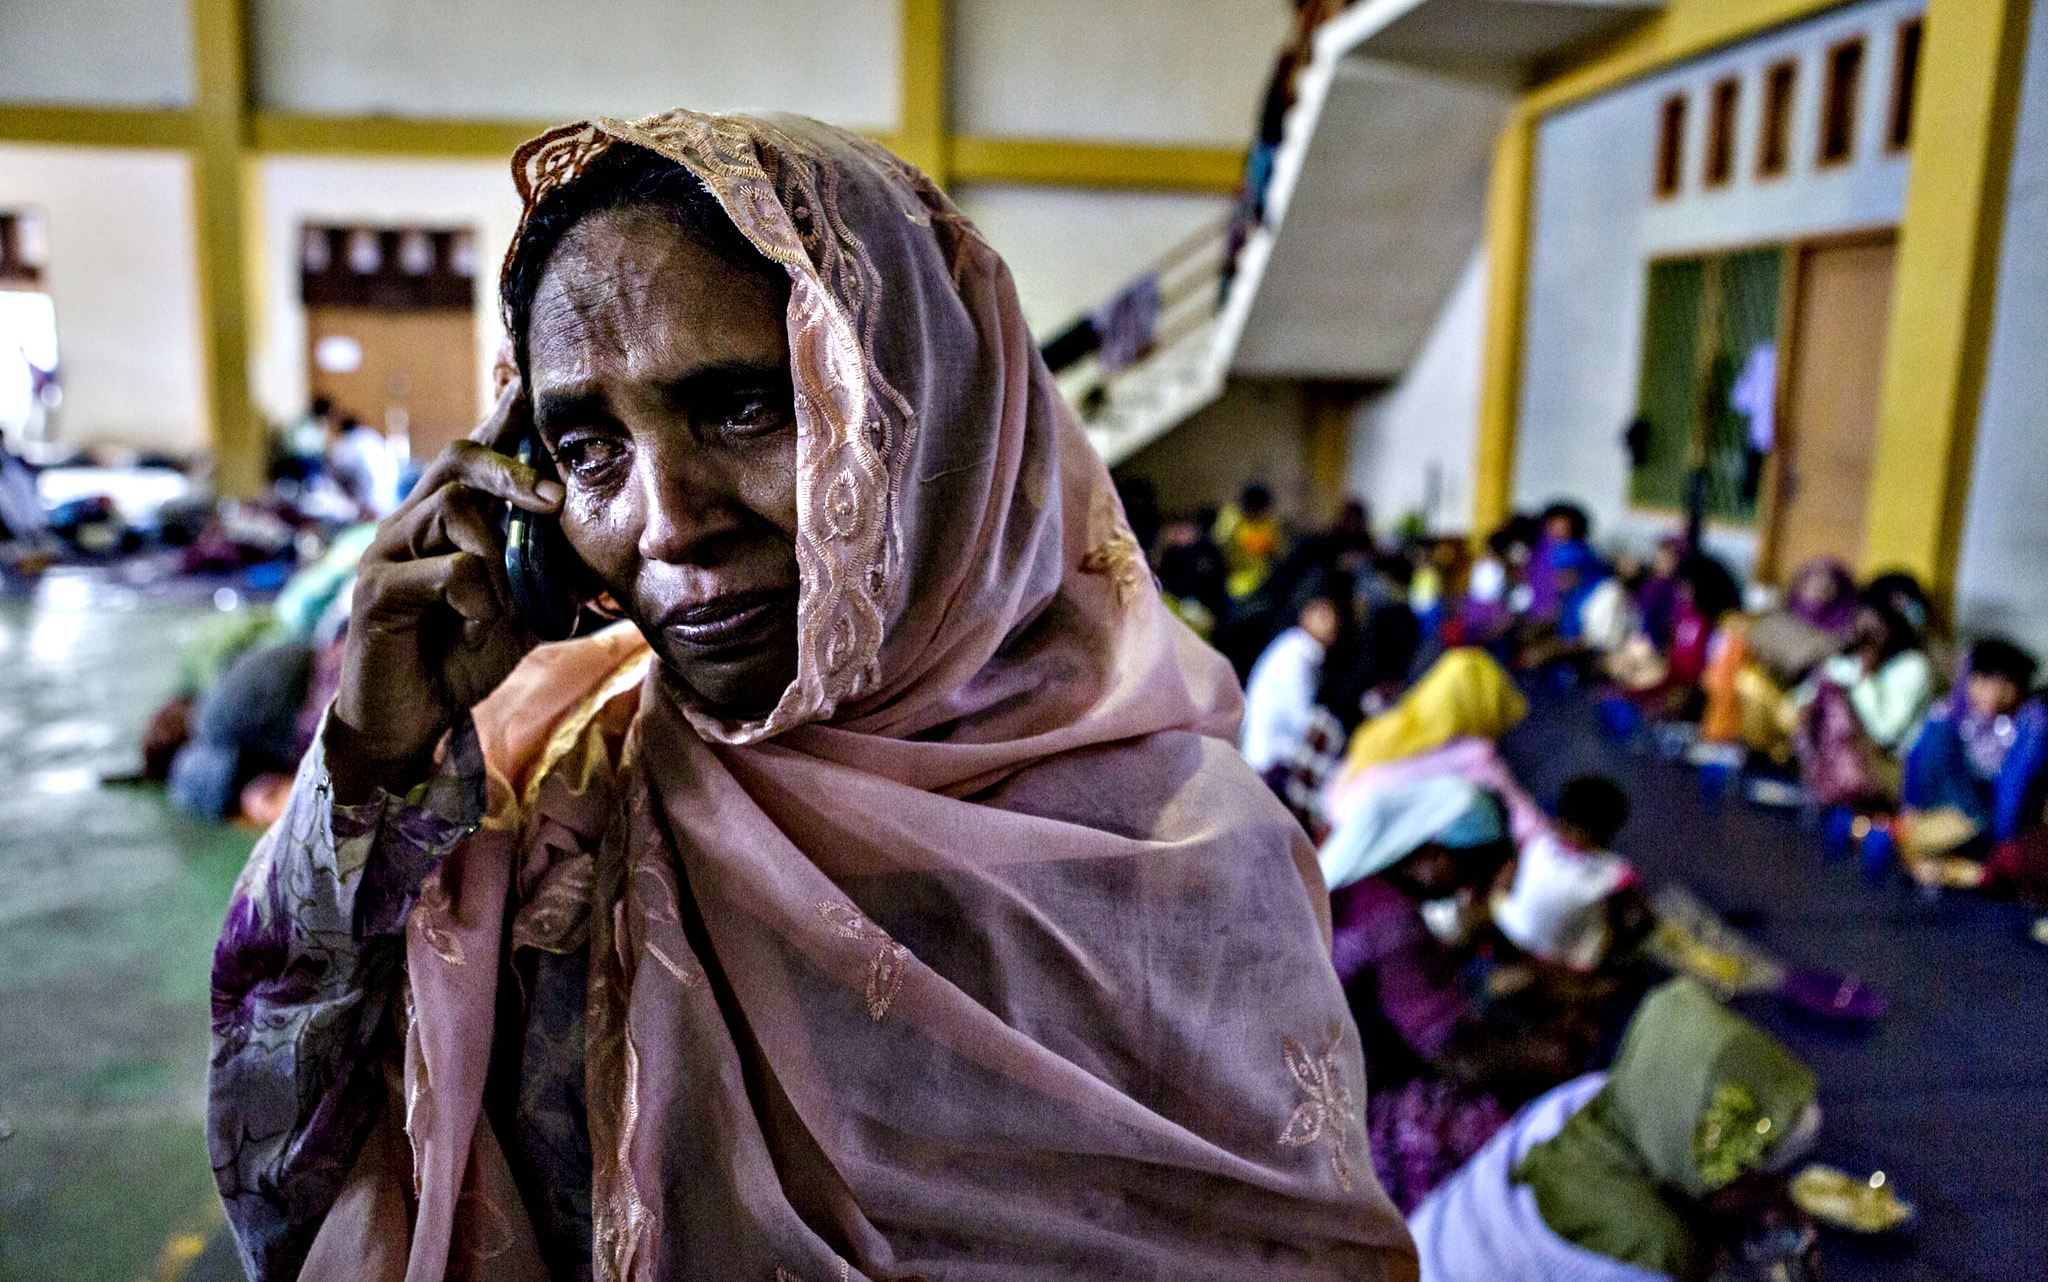 A Rohingya woman, Samsidah Begom binti Abdul Syukur, cries as she makes a phone call